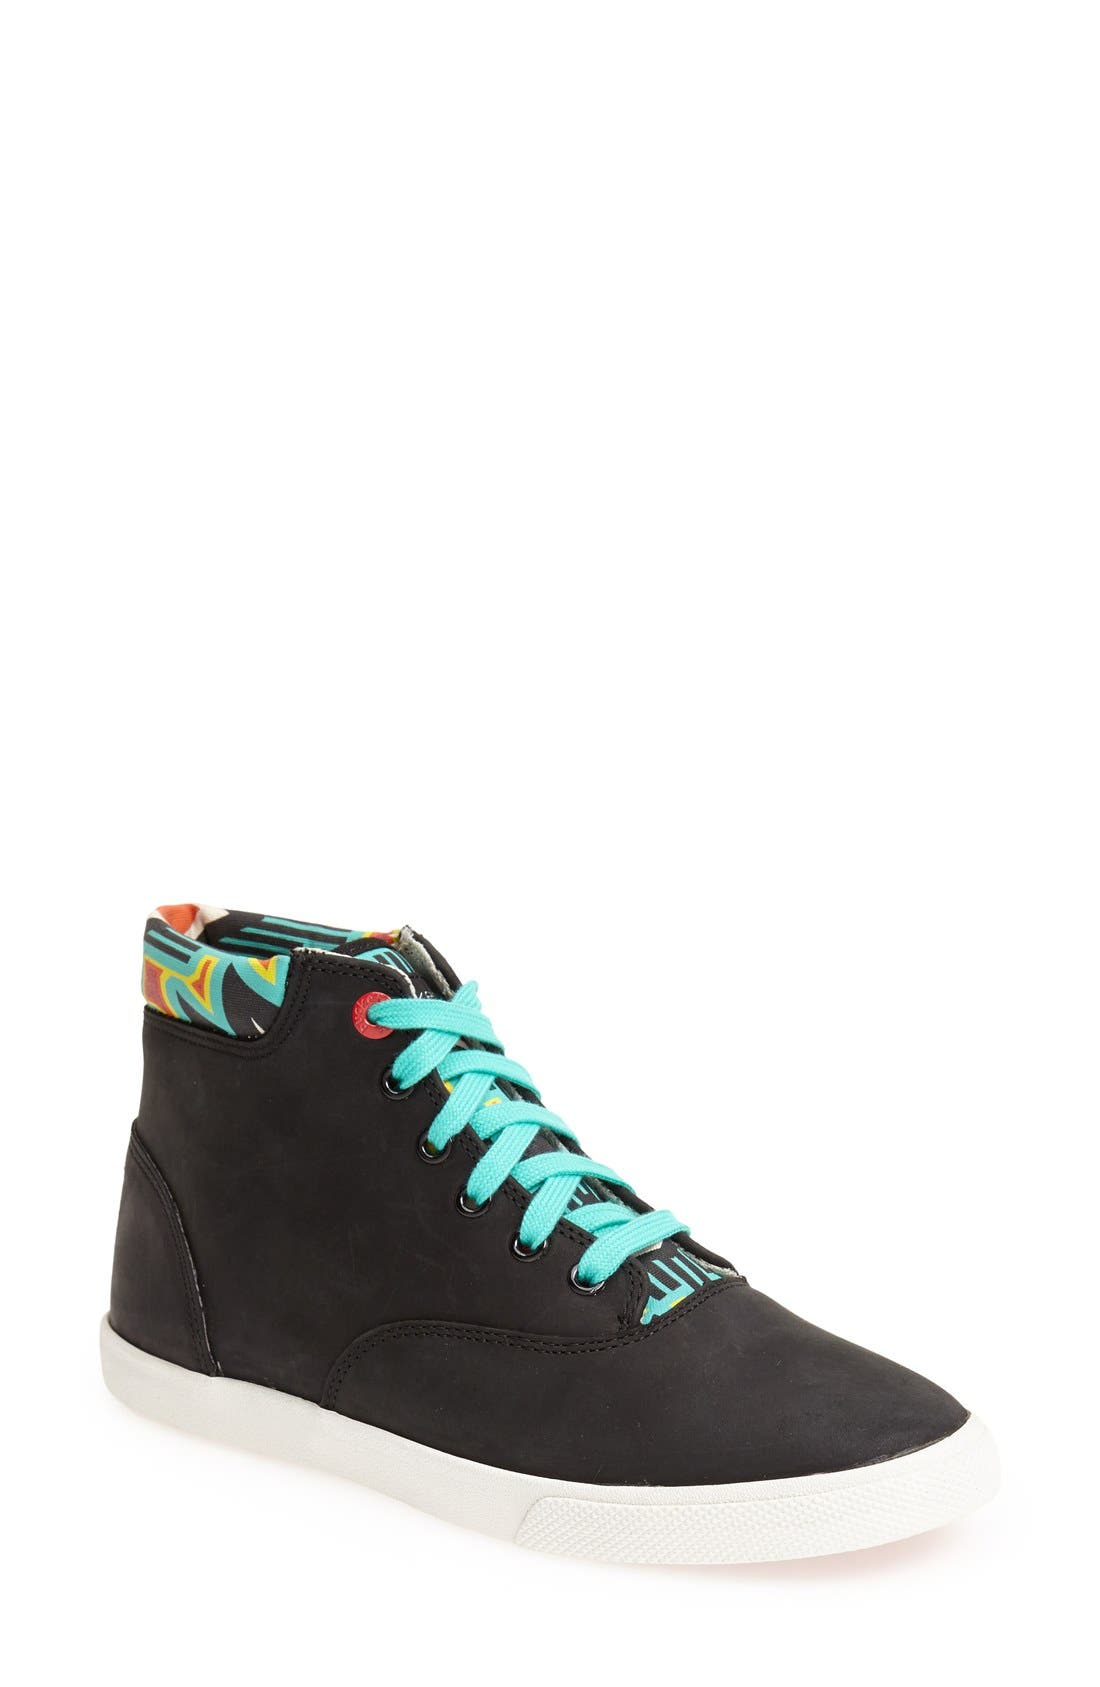 Alternate Image 1 Selected - BucketFeet 'Archer B' Mid Top Leather Sneaker (Women)